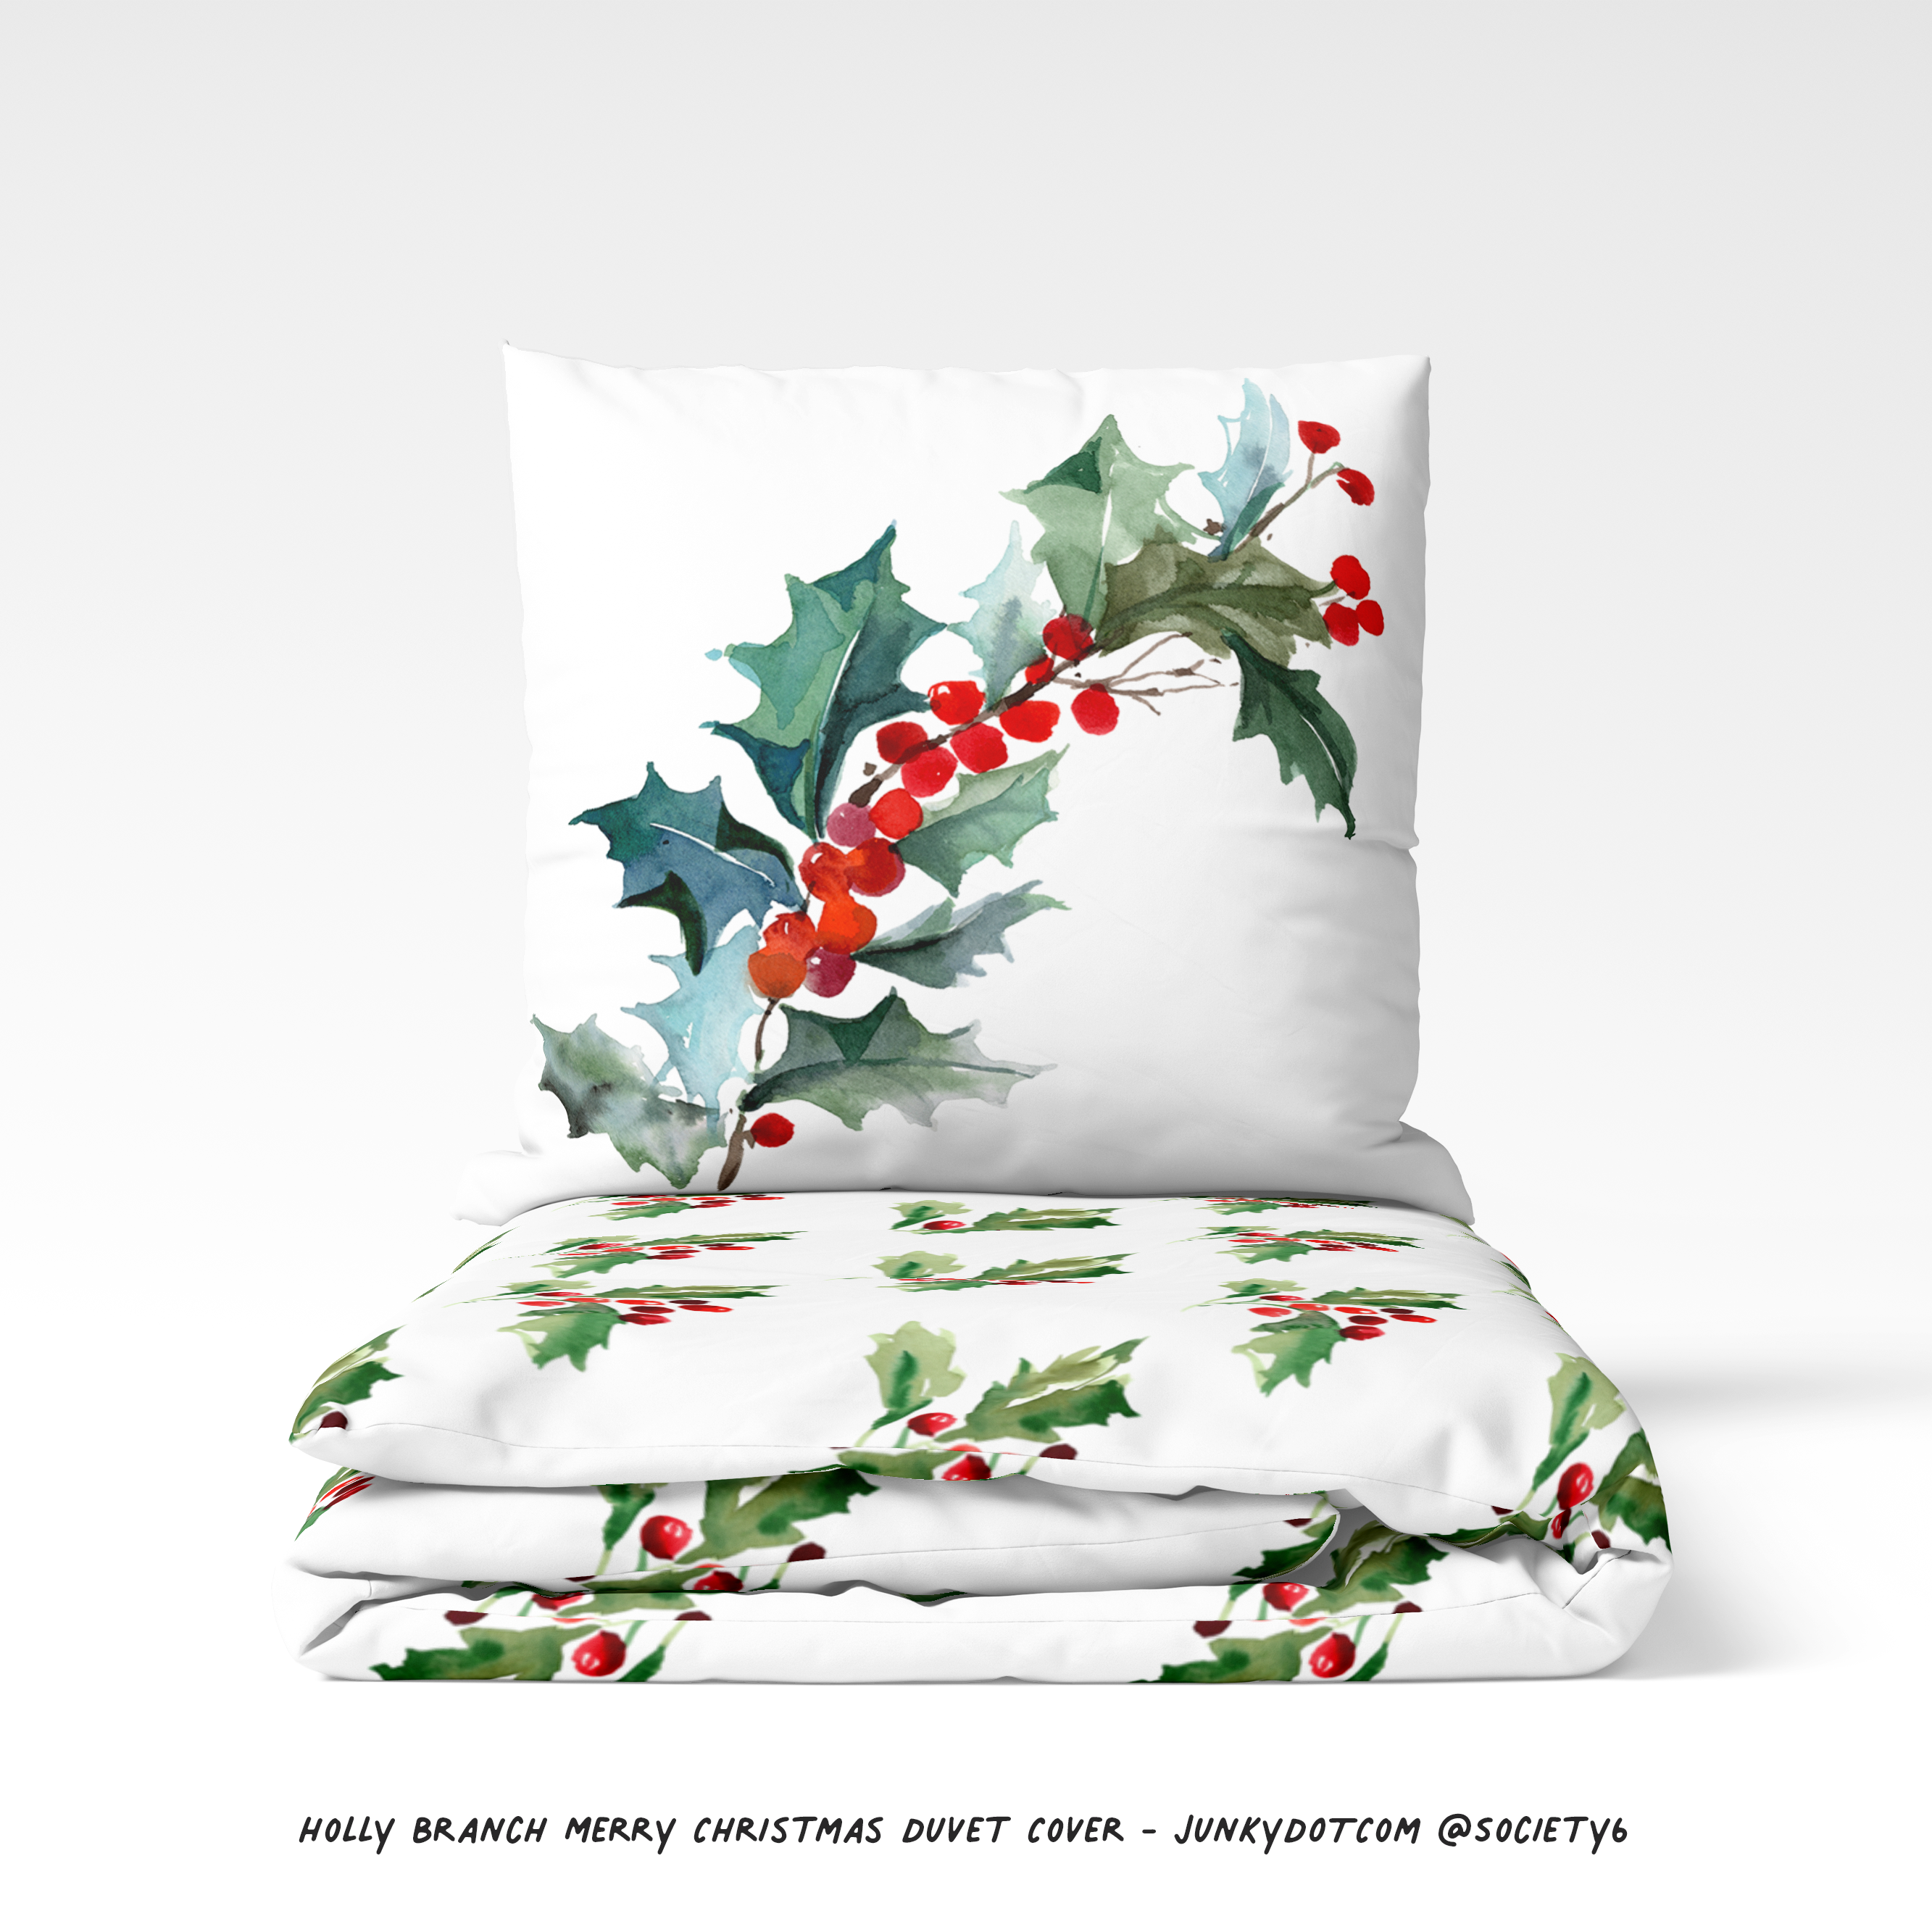 Holly Branch Merry Christmas Duvet Cover . . . #society6 #christmas #duvetcover #merrychristmas #holly #watercolor #nature #junkydotcom #creatsy #christmasduvetcover #rustic #hollywithberries #instachristmas